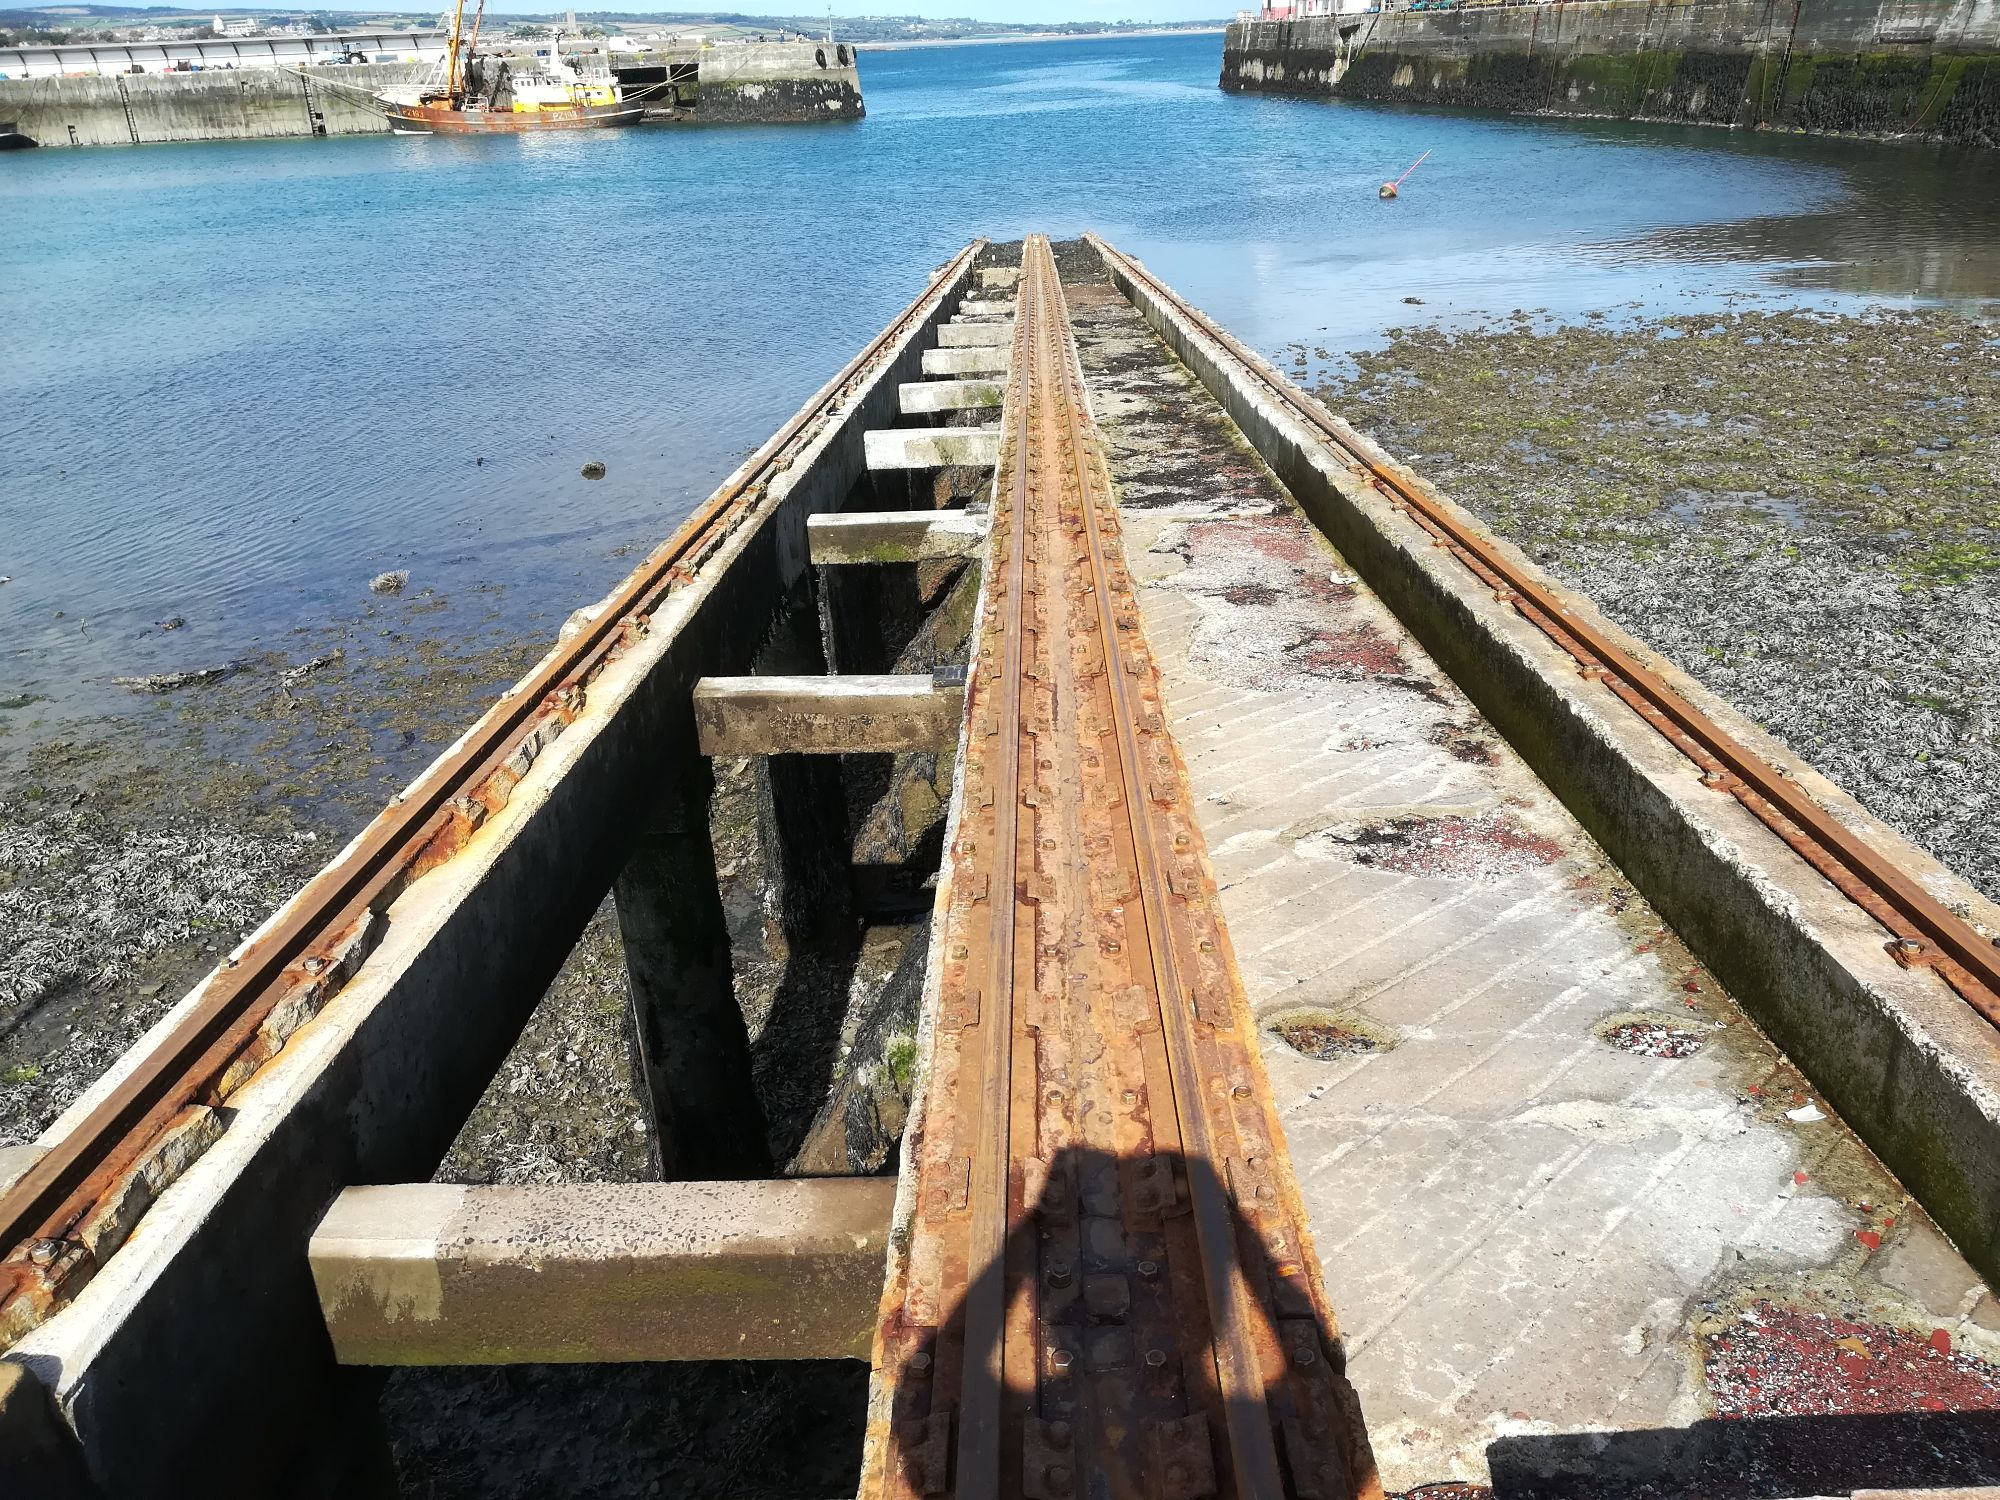 Level survey of slipway rails near Penzance, Cornwall